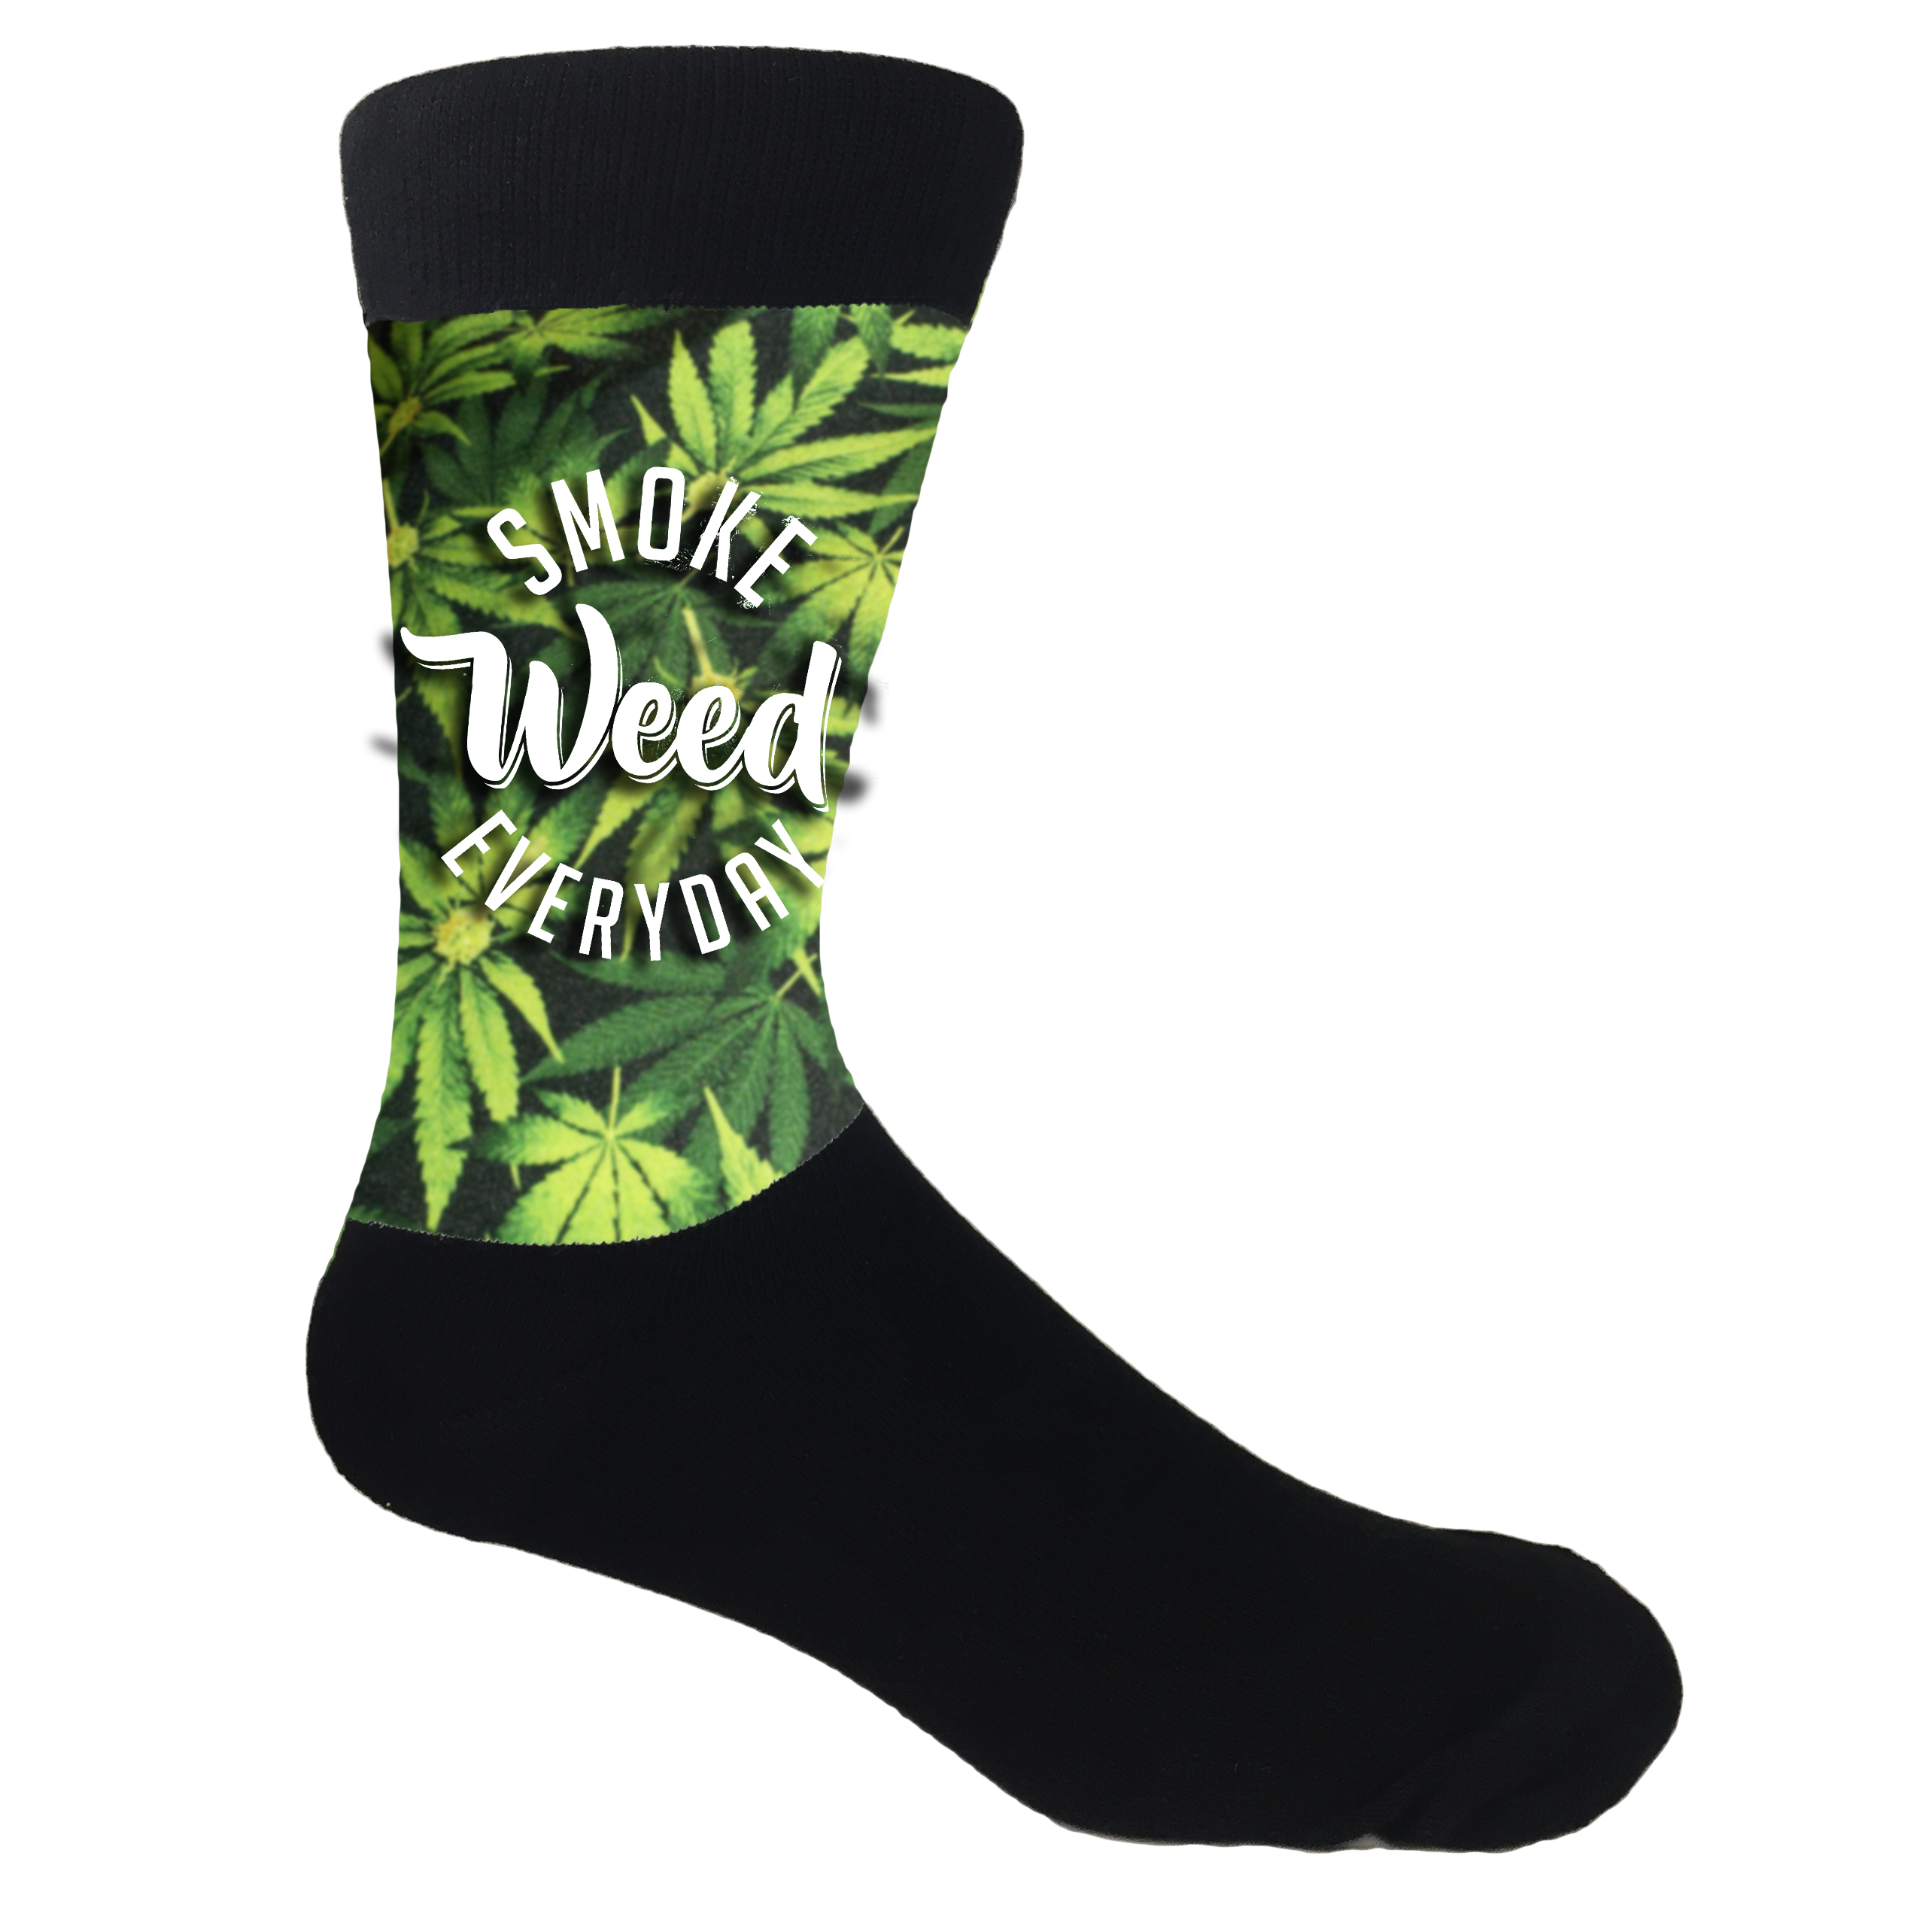 Smoke weed everyday png. Dank meme socks